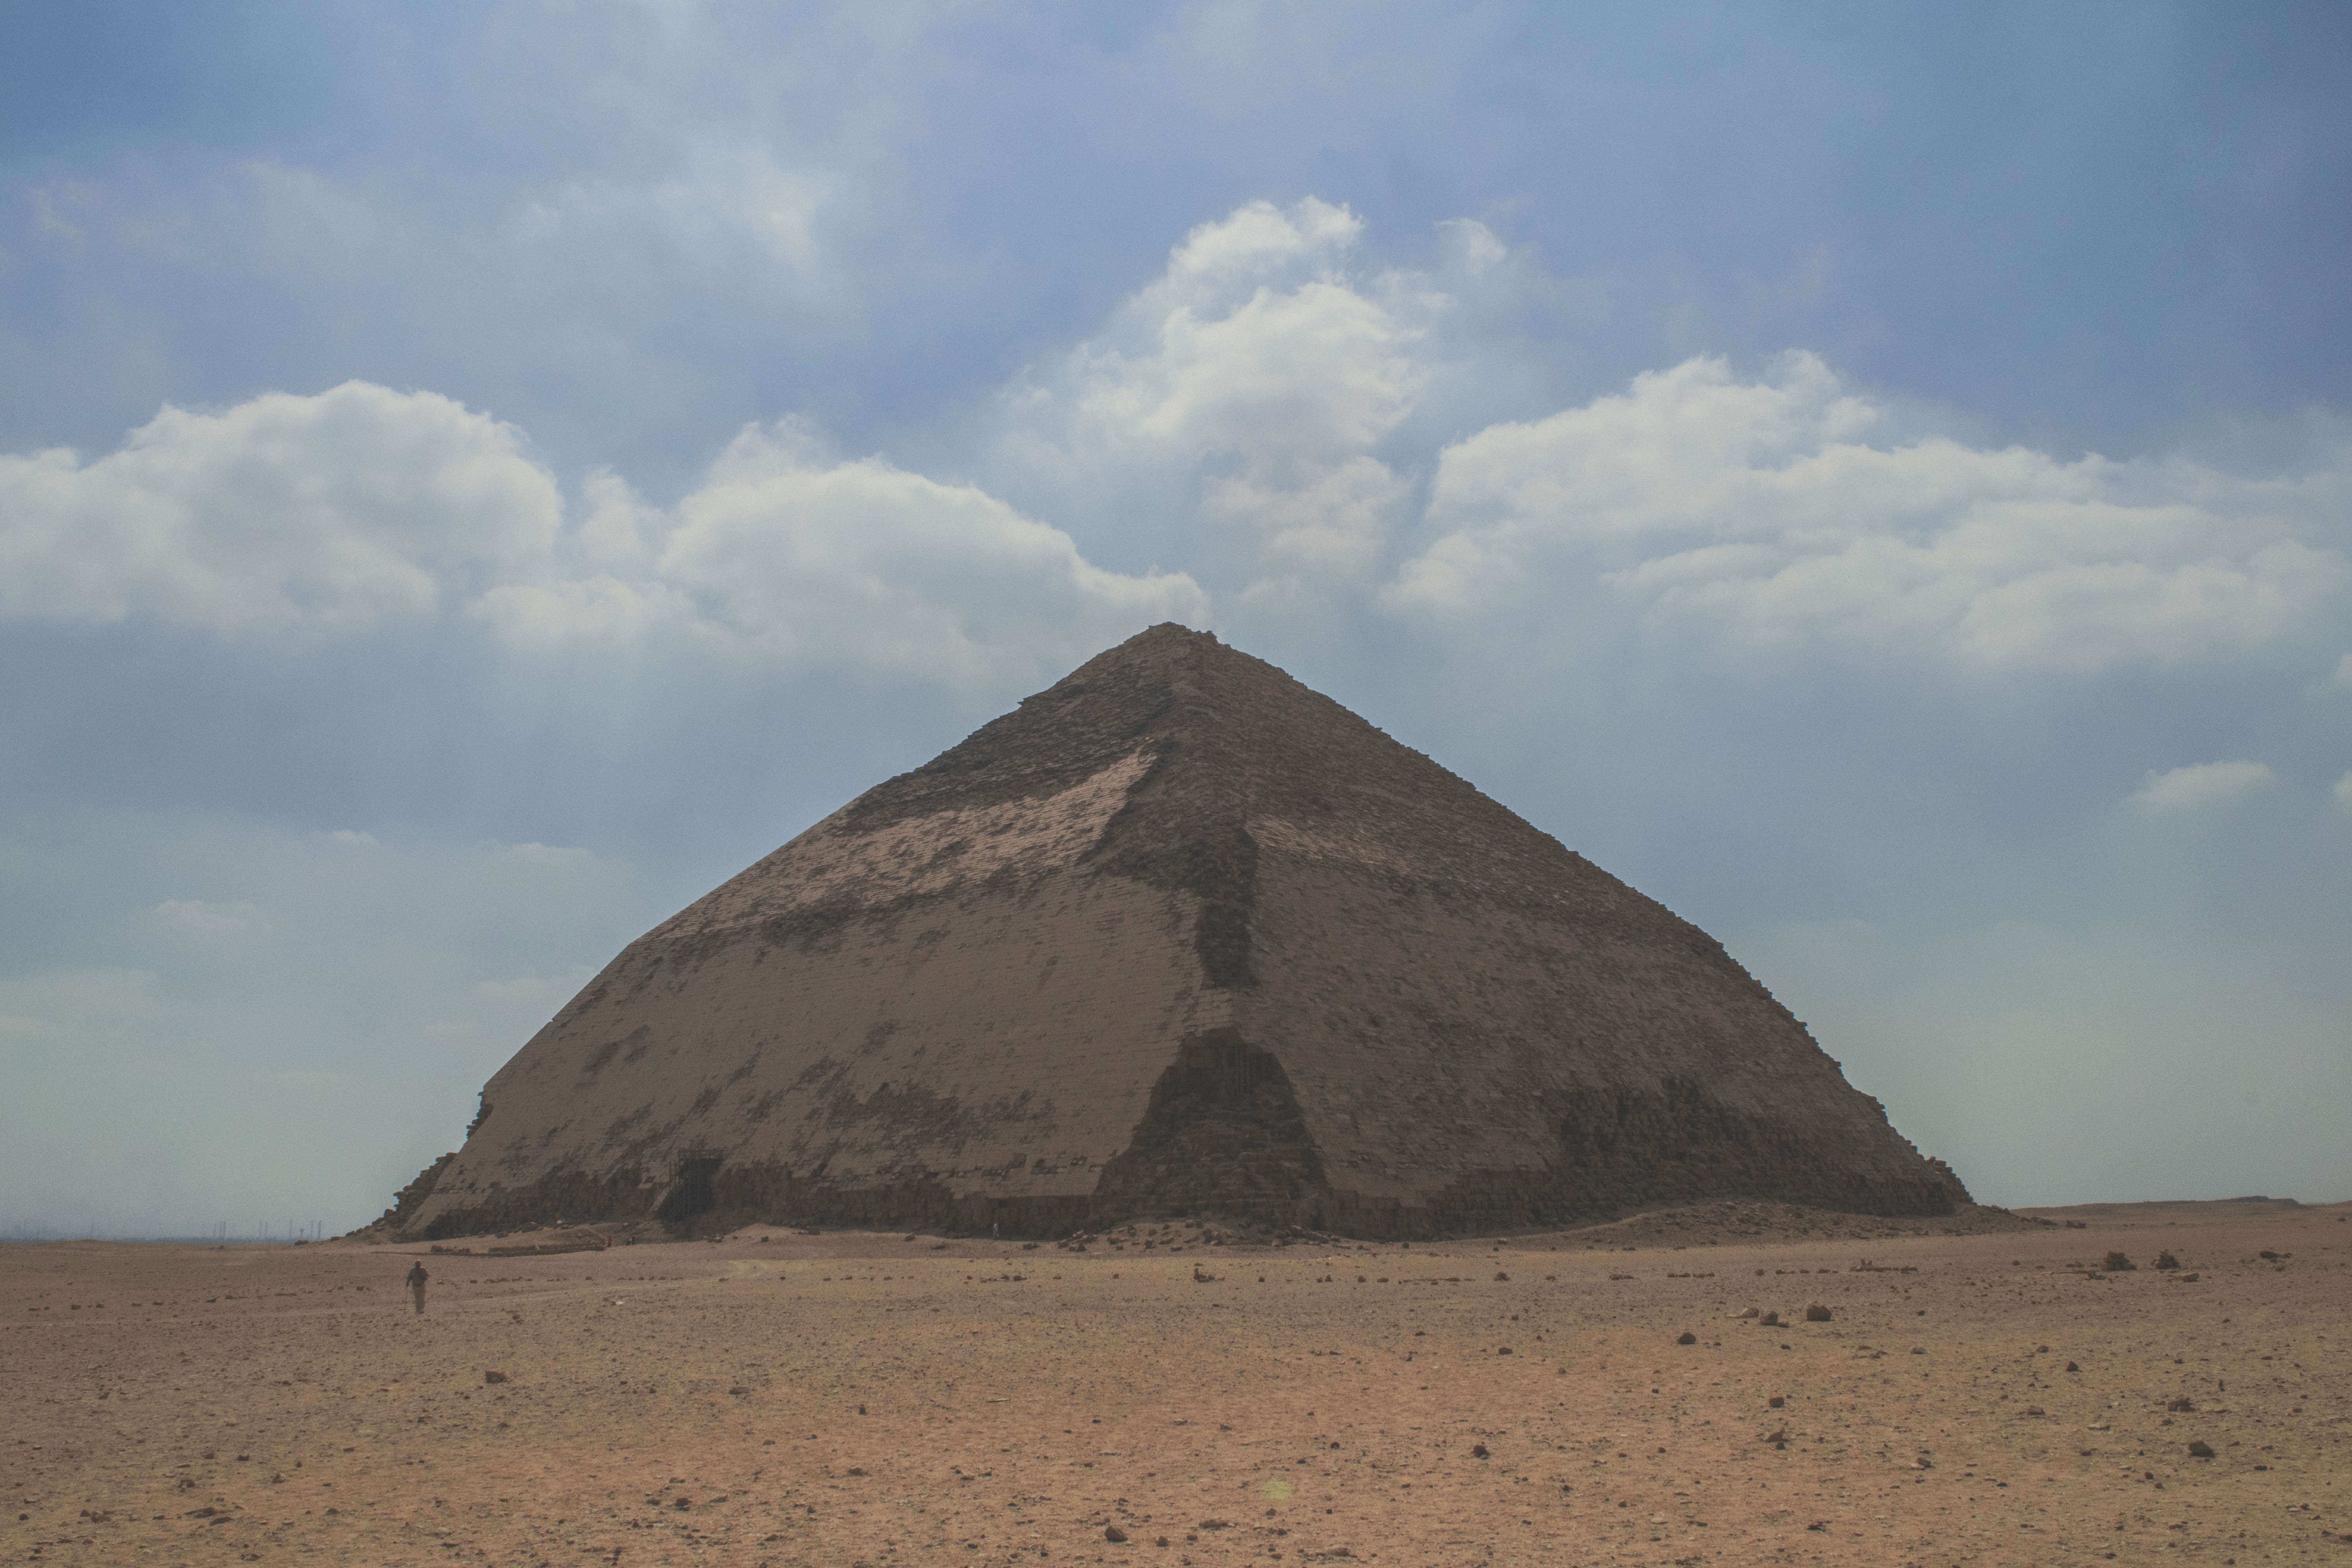 Bent Pyramid, Giza, Egypt